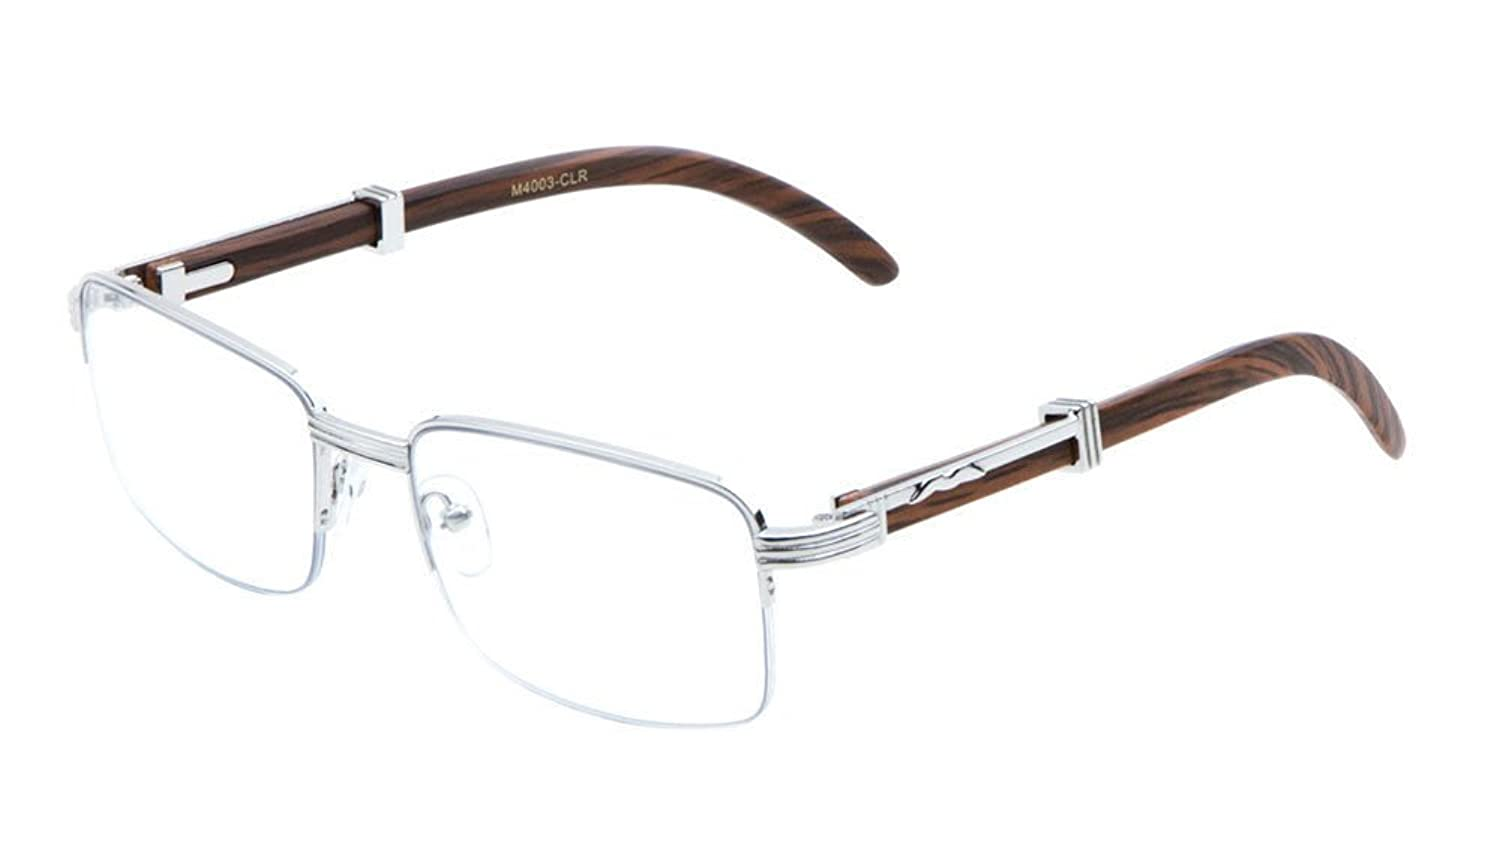 Rectangular 1/2 Rim Wood Buffs clear glasses Lenses Silver brown frame RICH